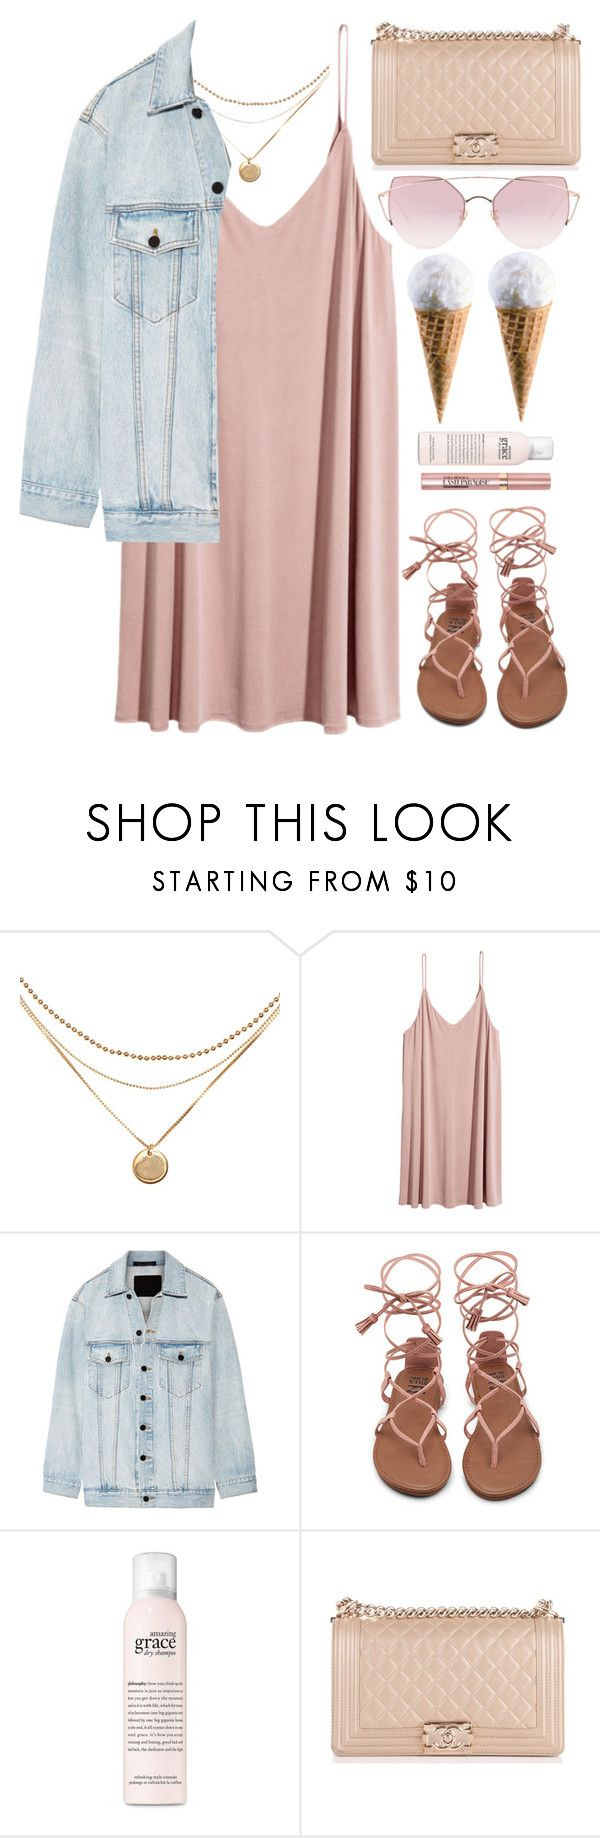 """""""Ice Cream Day"""" by monmondefou ❤ liked on Polyvore featuring Alexander Wang, philosophy, Chanel, LMNT, L'Oréal Paris and Pink"""